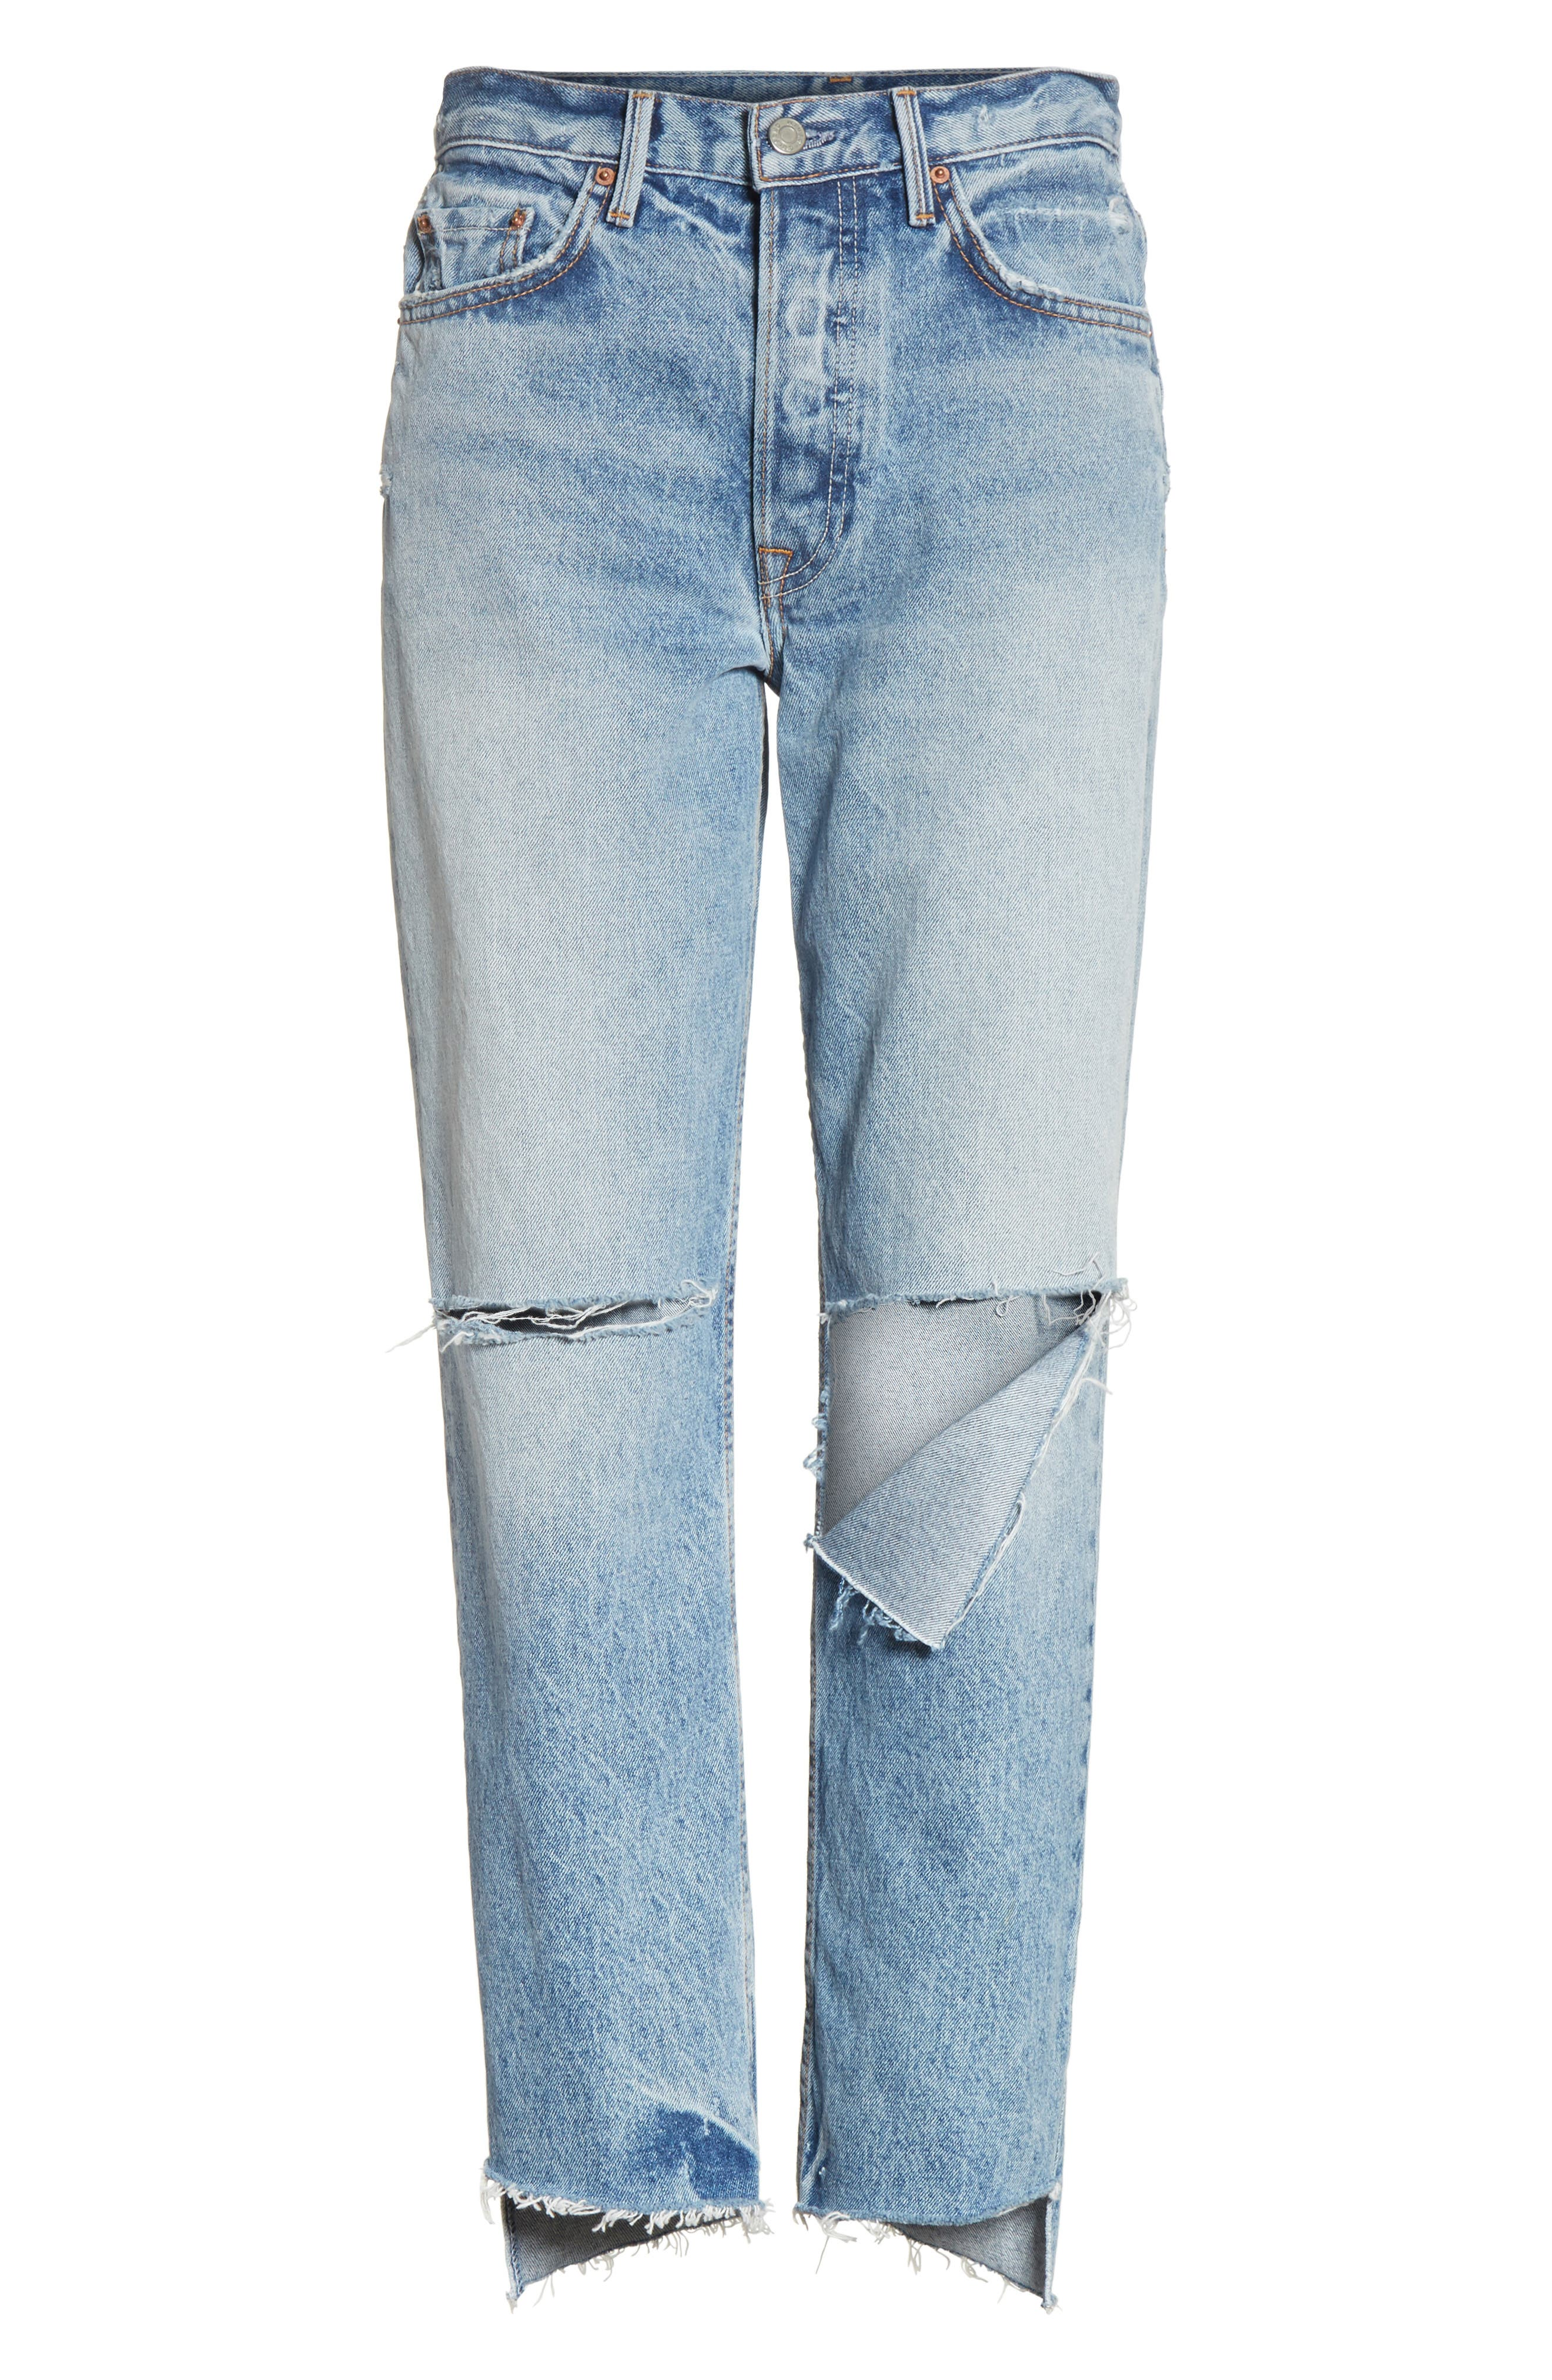 Helena Ripped Rigid High Waist Straight Jeans,                             Alternate thumbnail 7, color,                             All Cut Up